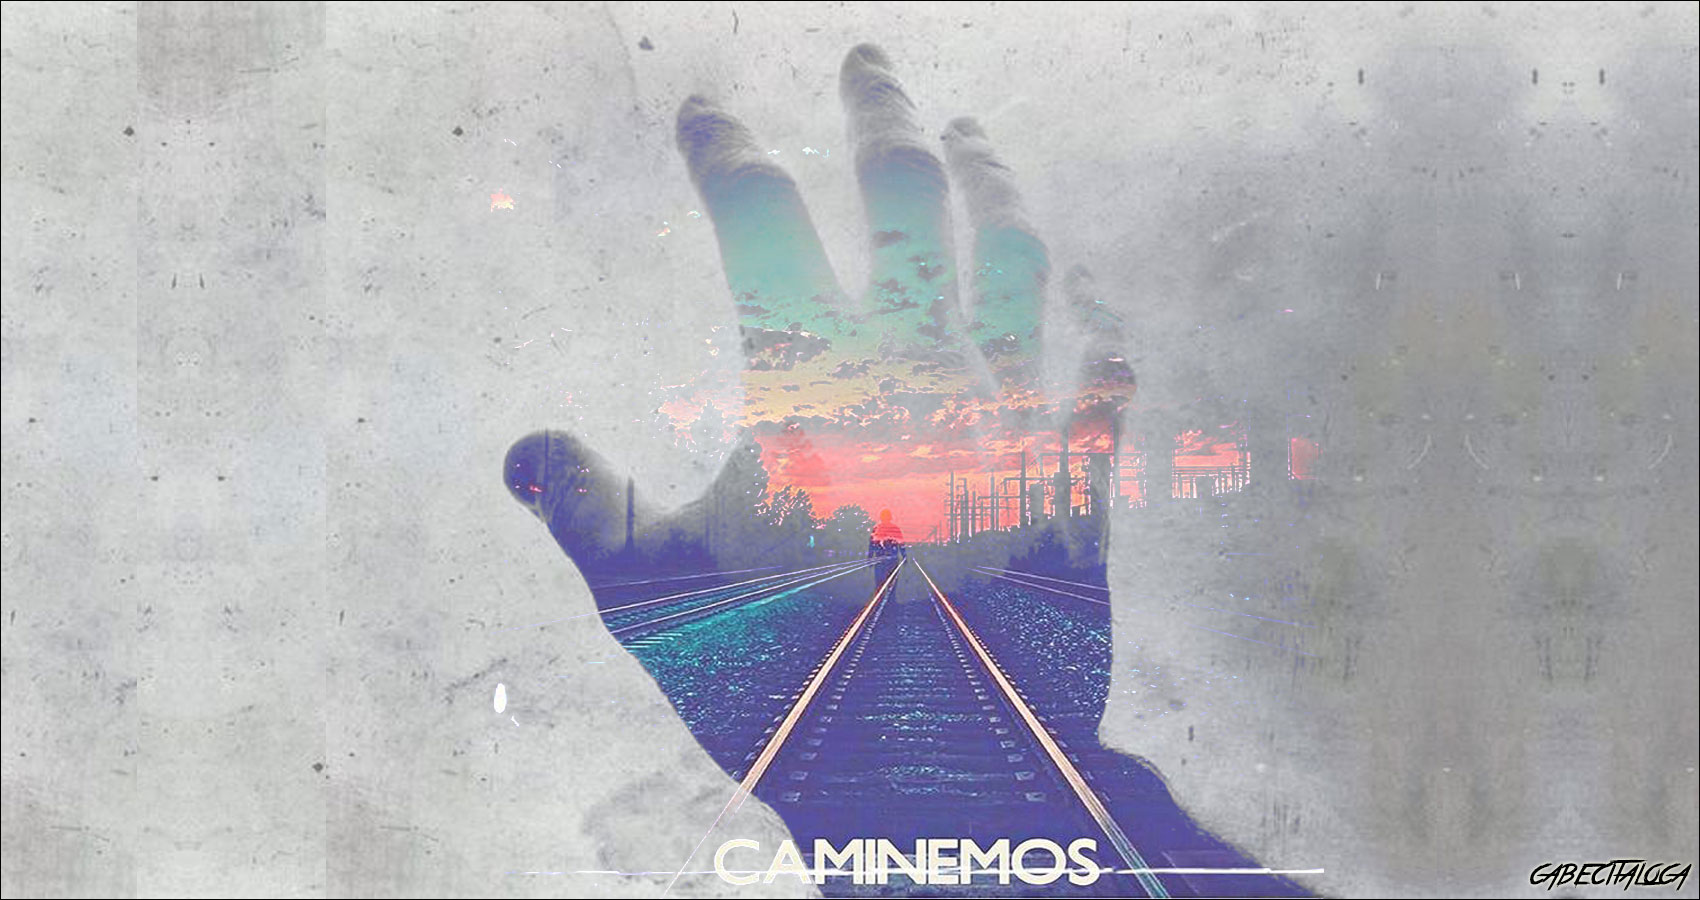 Caminemos, a poem written by Cabecitaloca at Spillwords.com